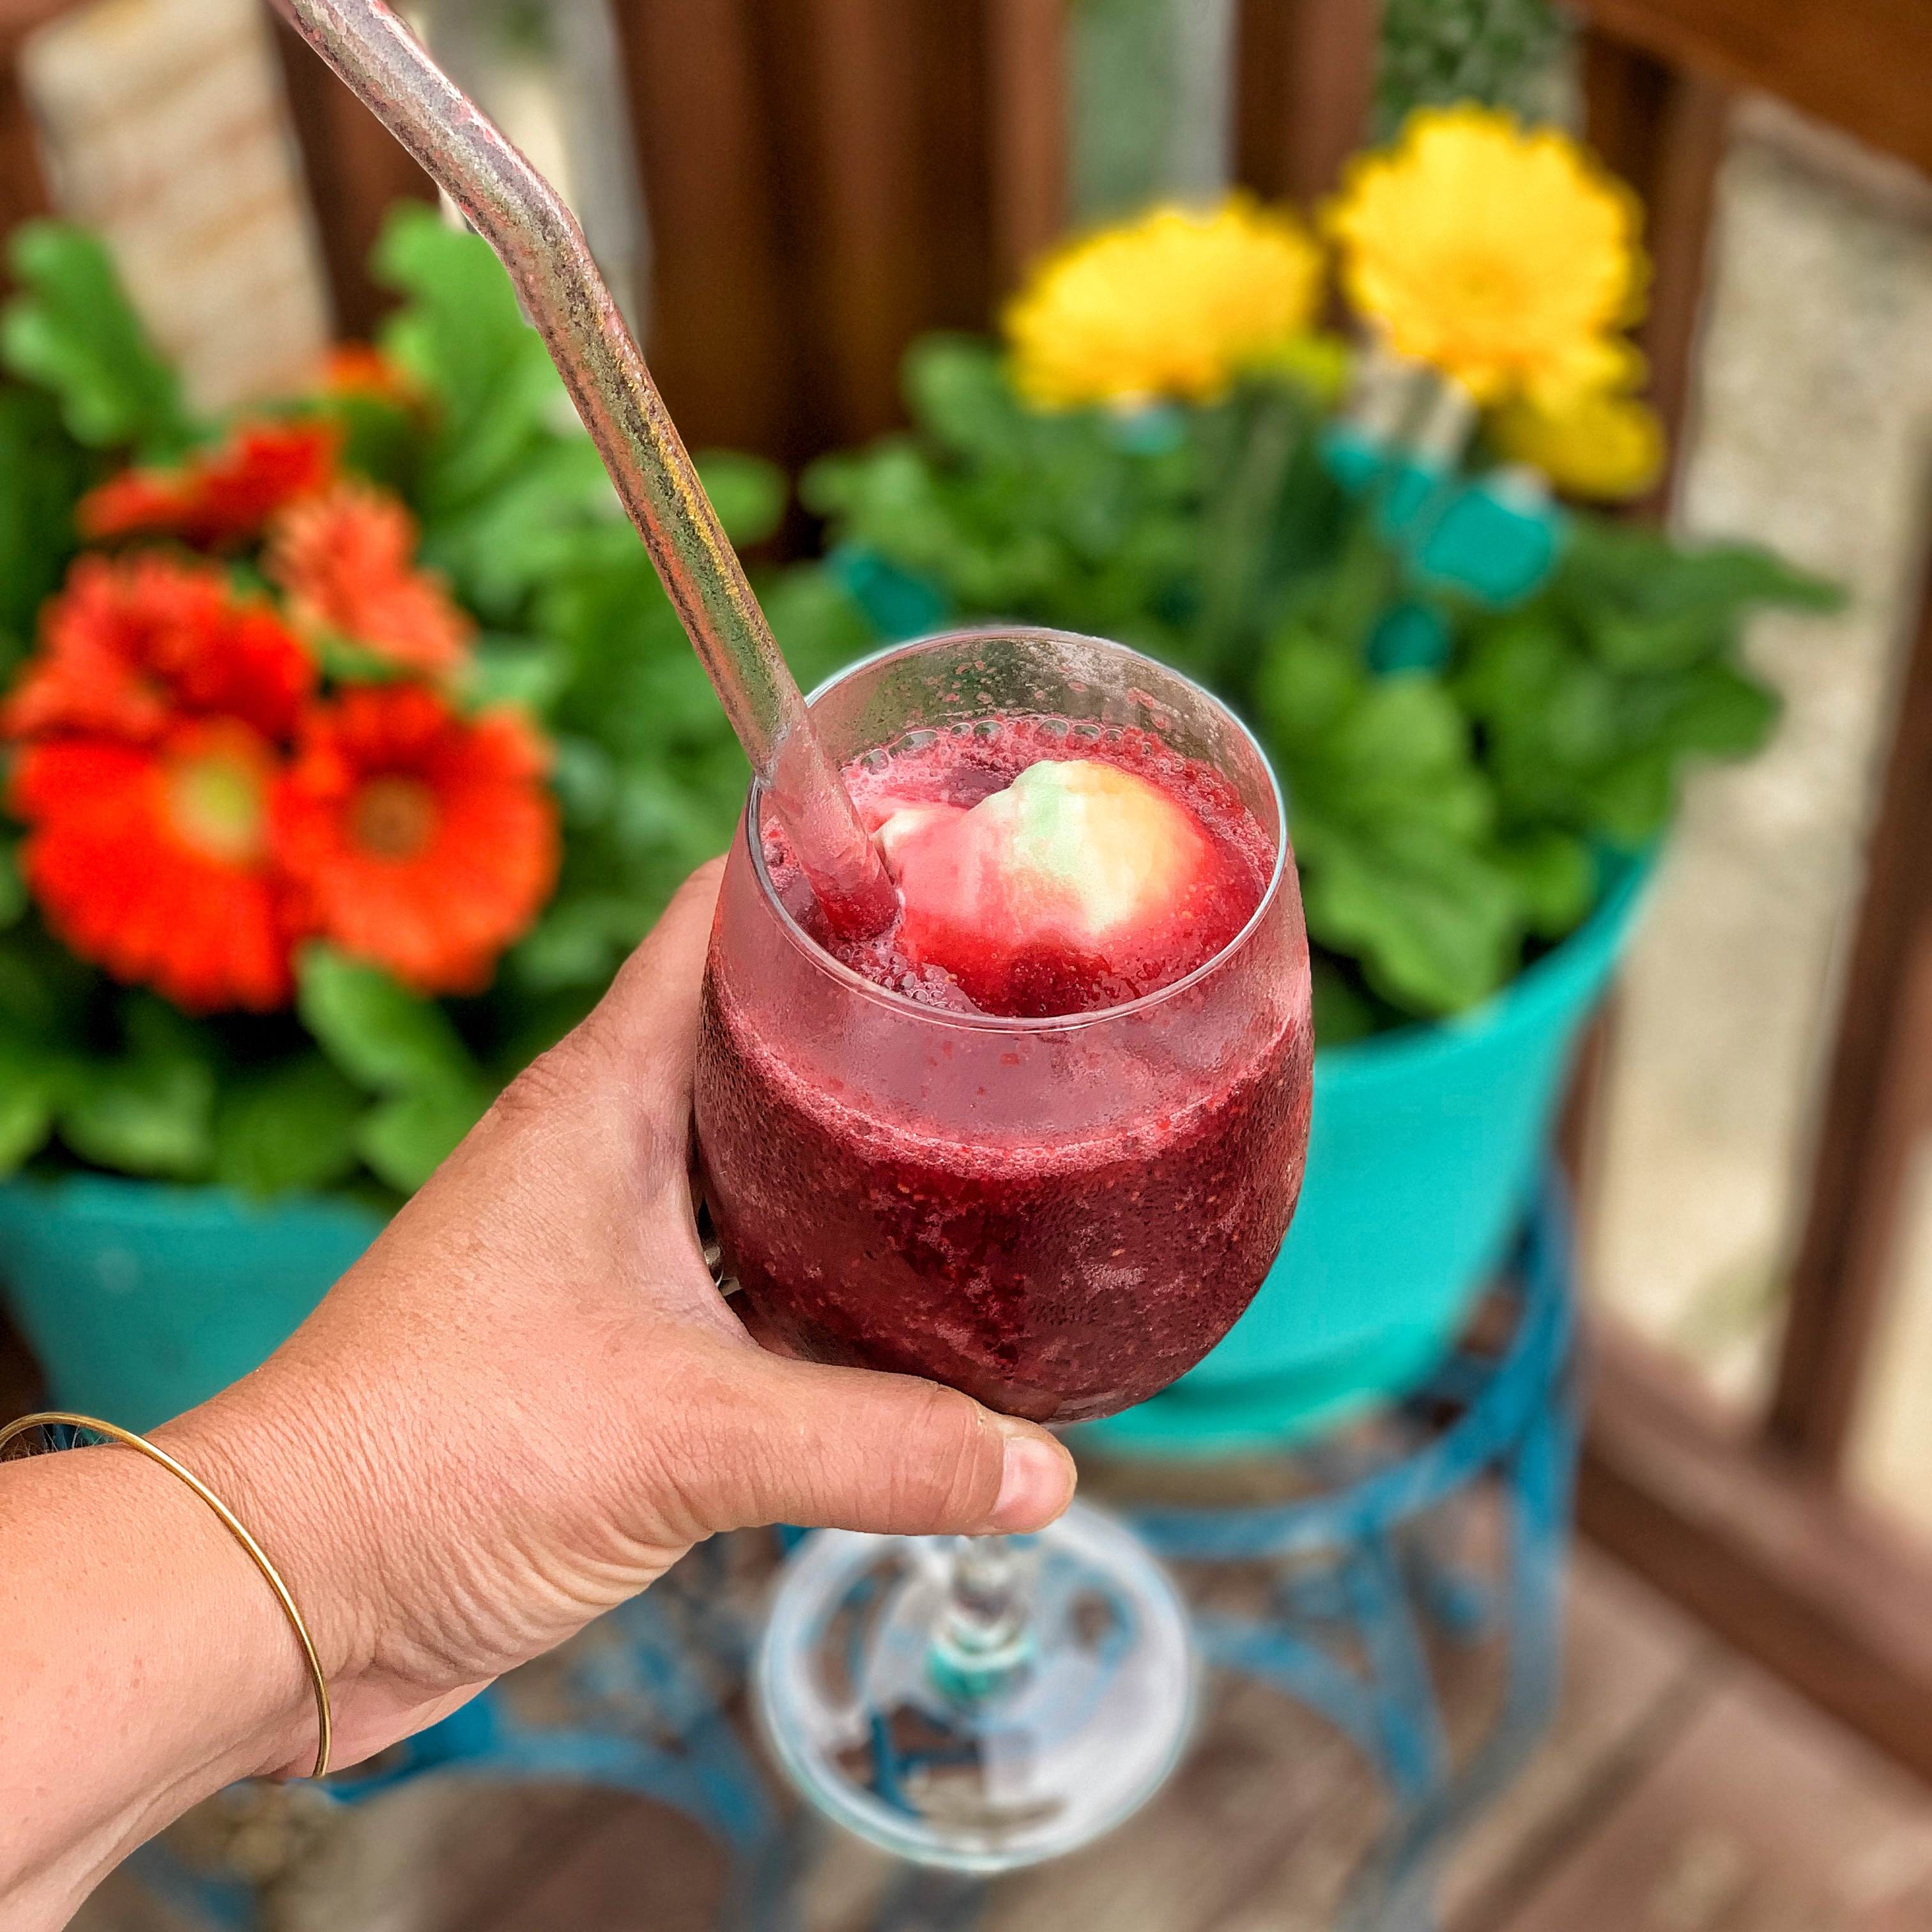 A wine glass with a fruity red frozen red wine